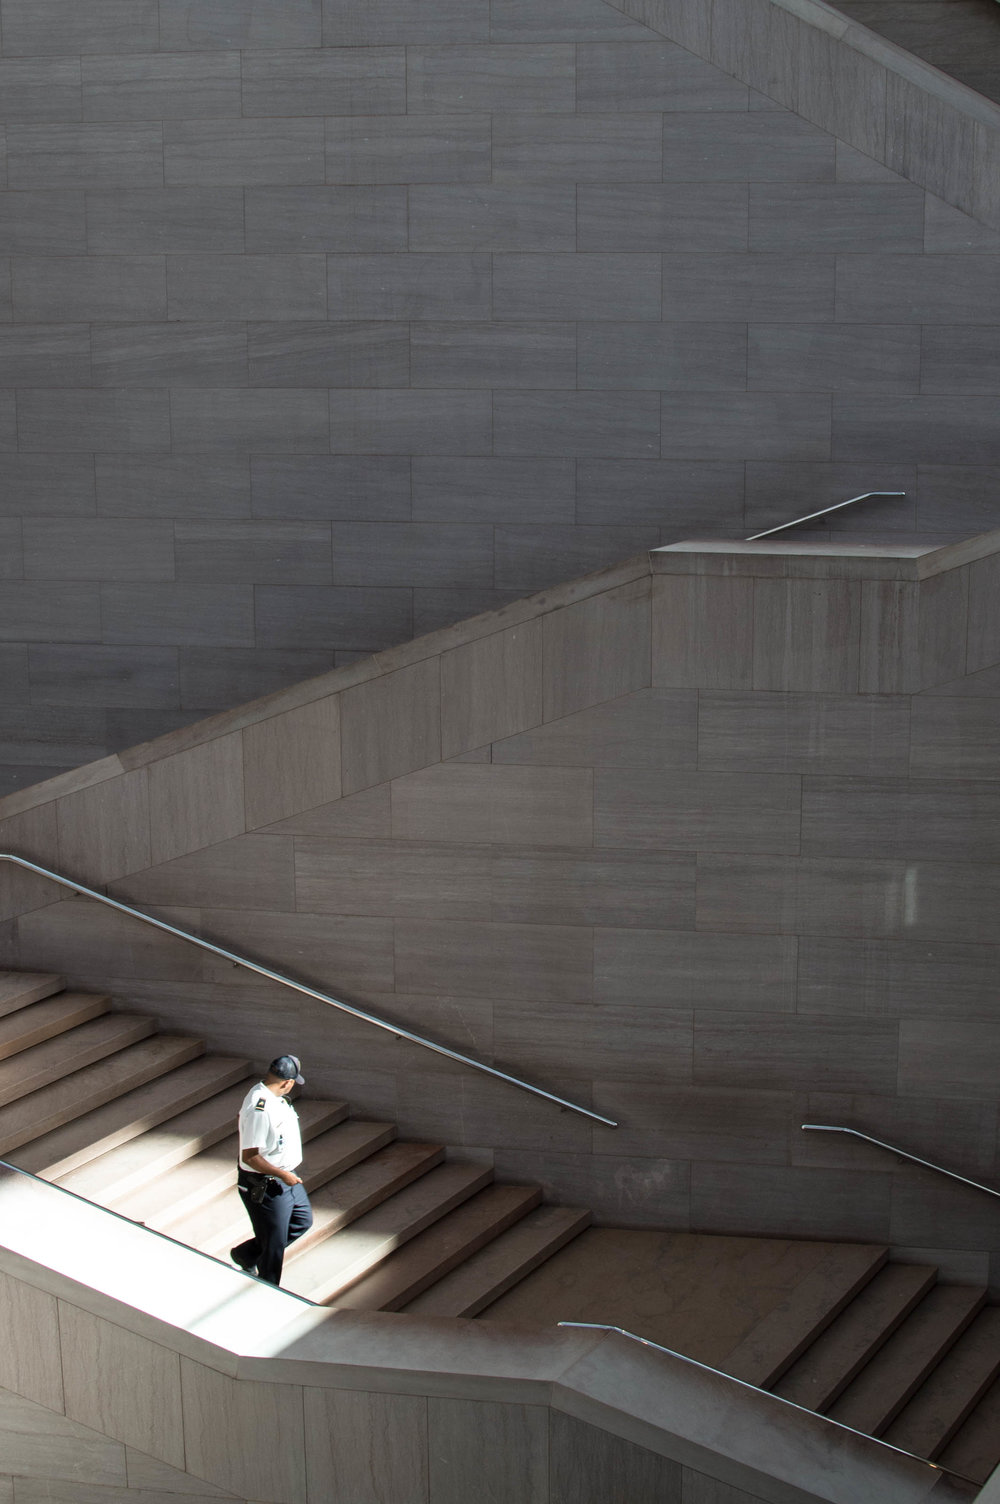 2015-09-14 washington_dc national gallery east_stairs man V1.jpg